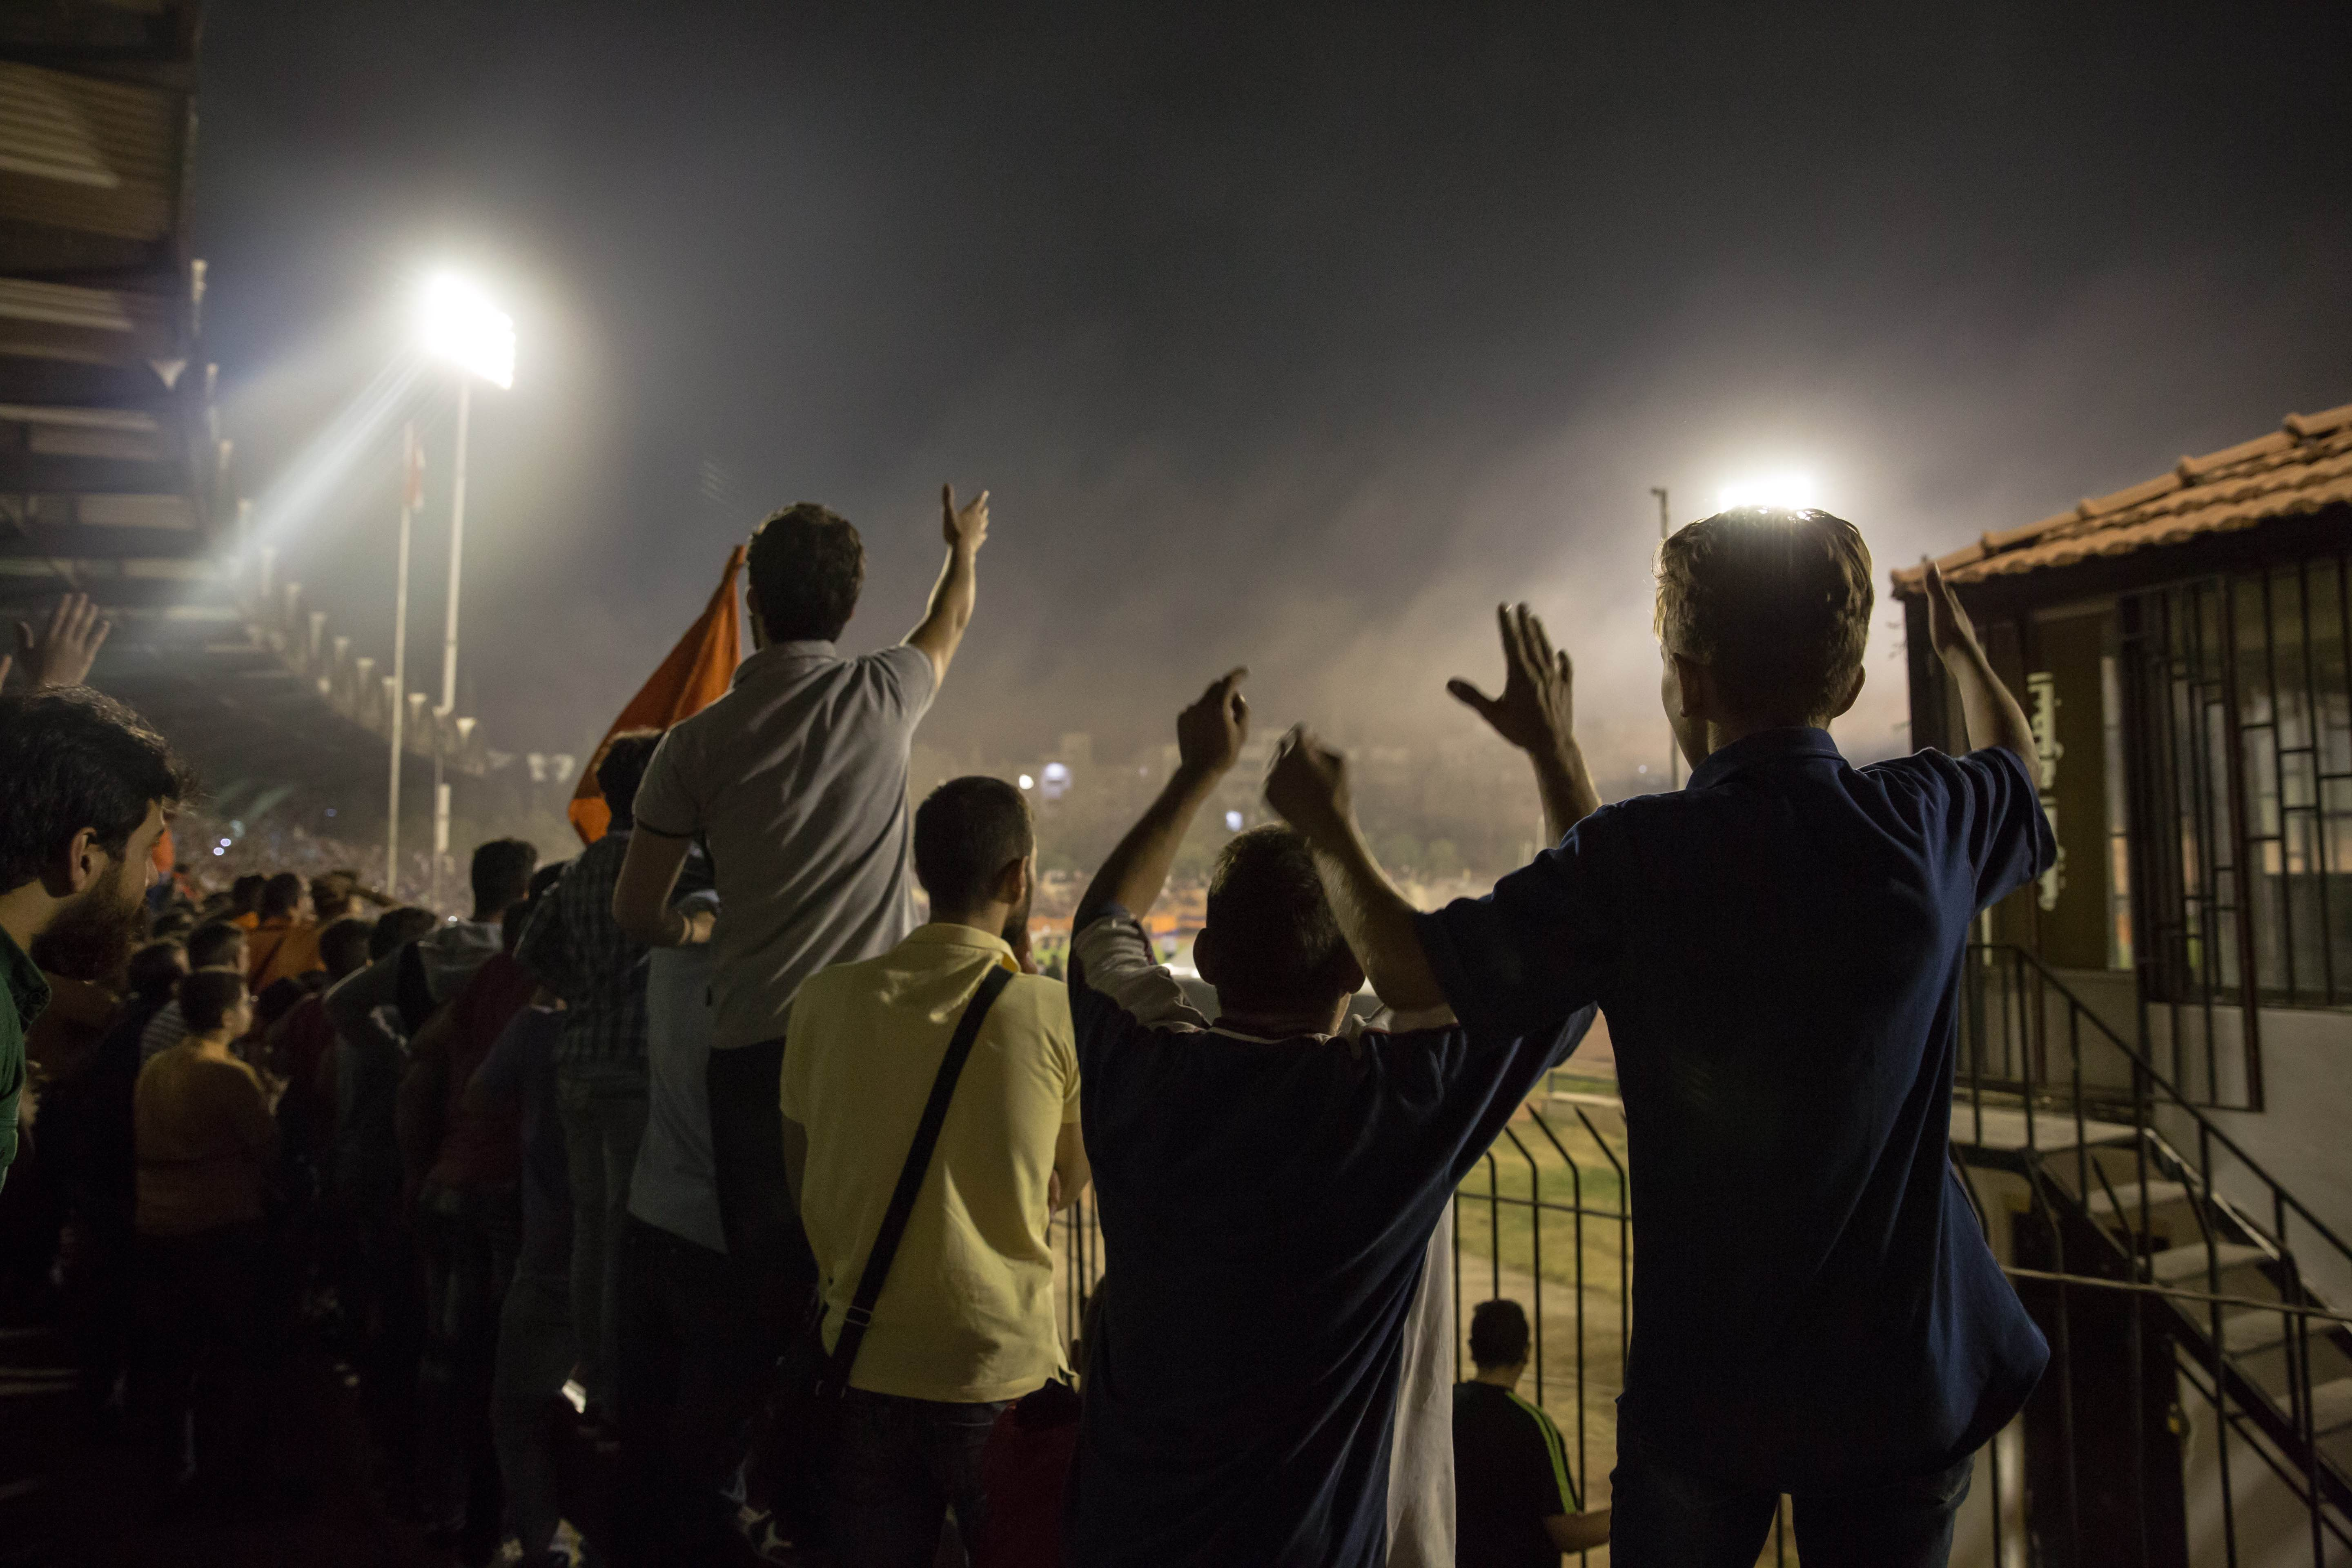 Al-Wahda fans cheer as their team gains advantage.